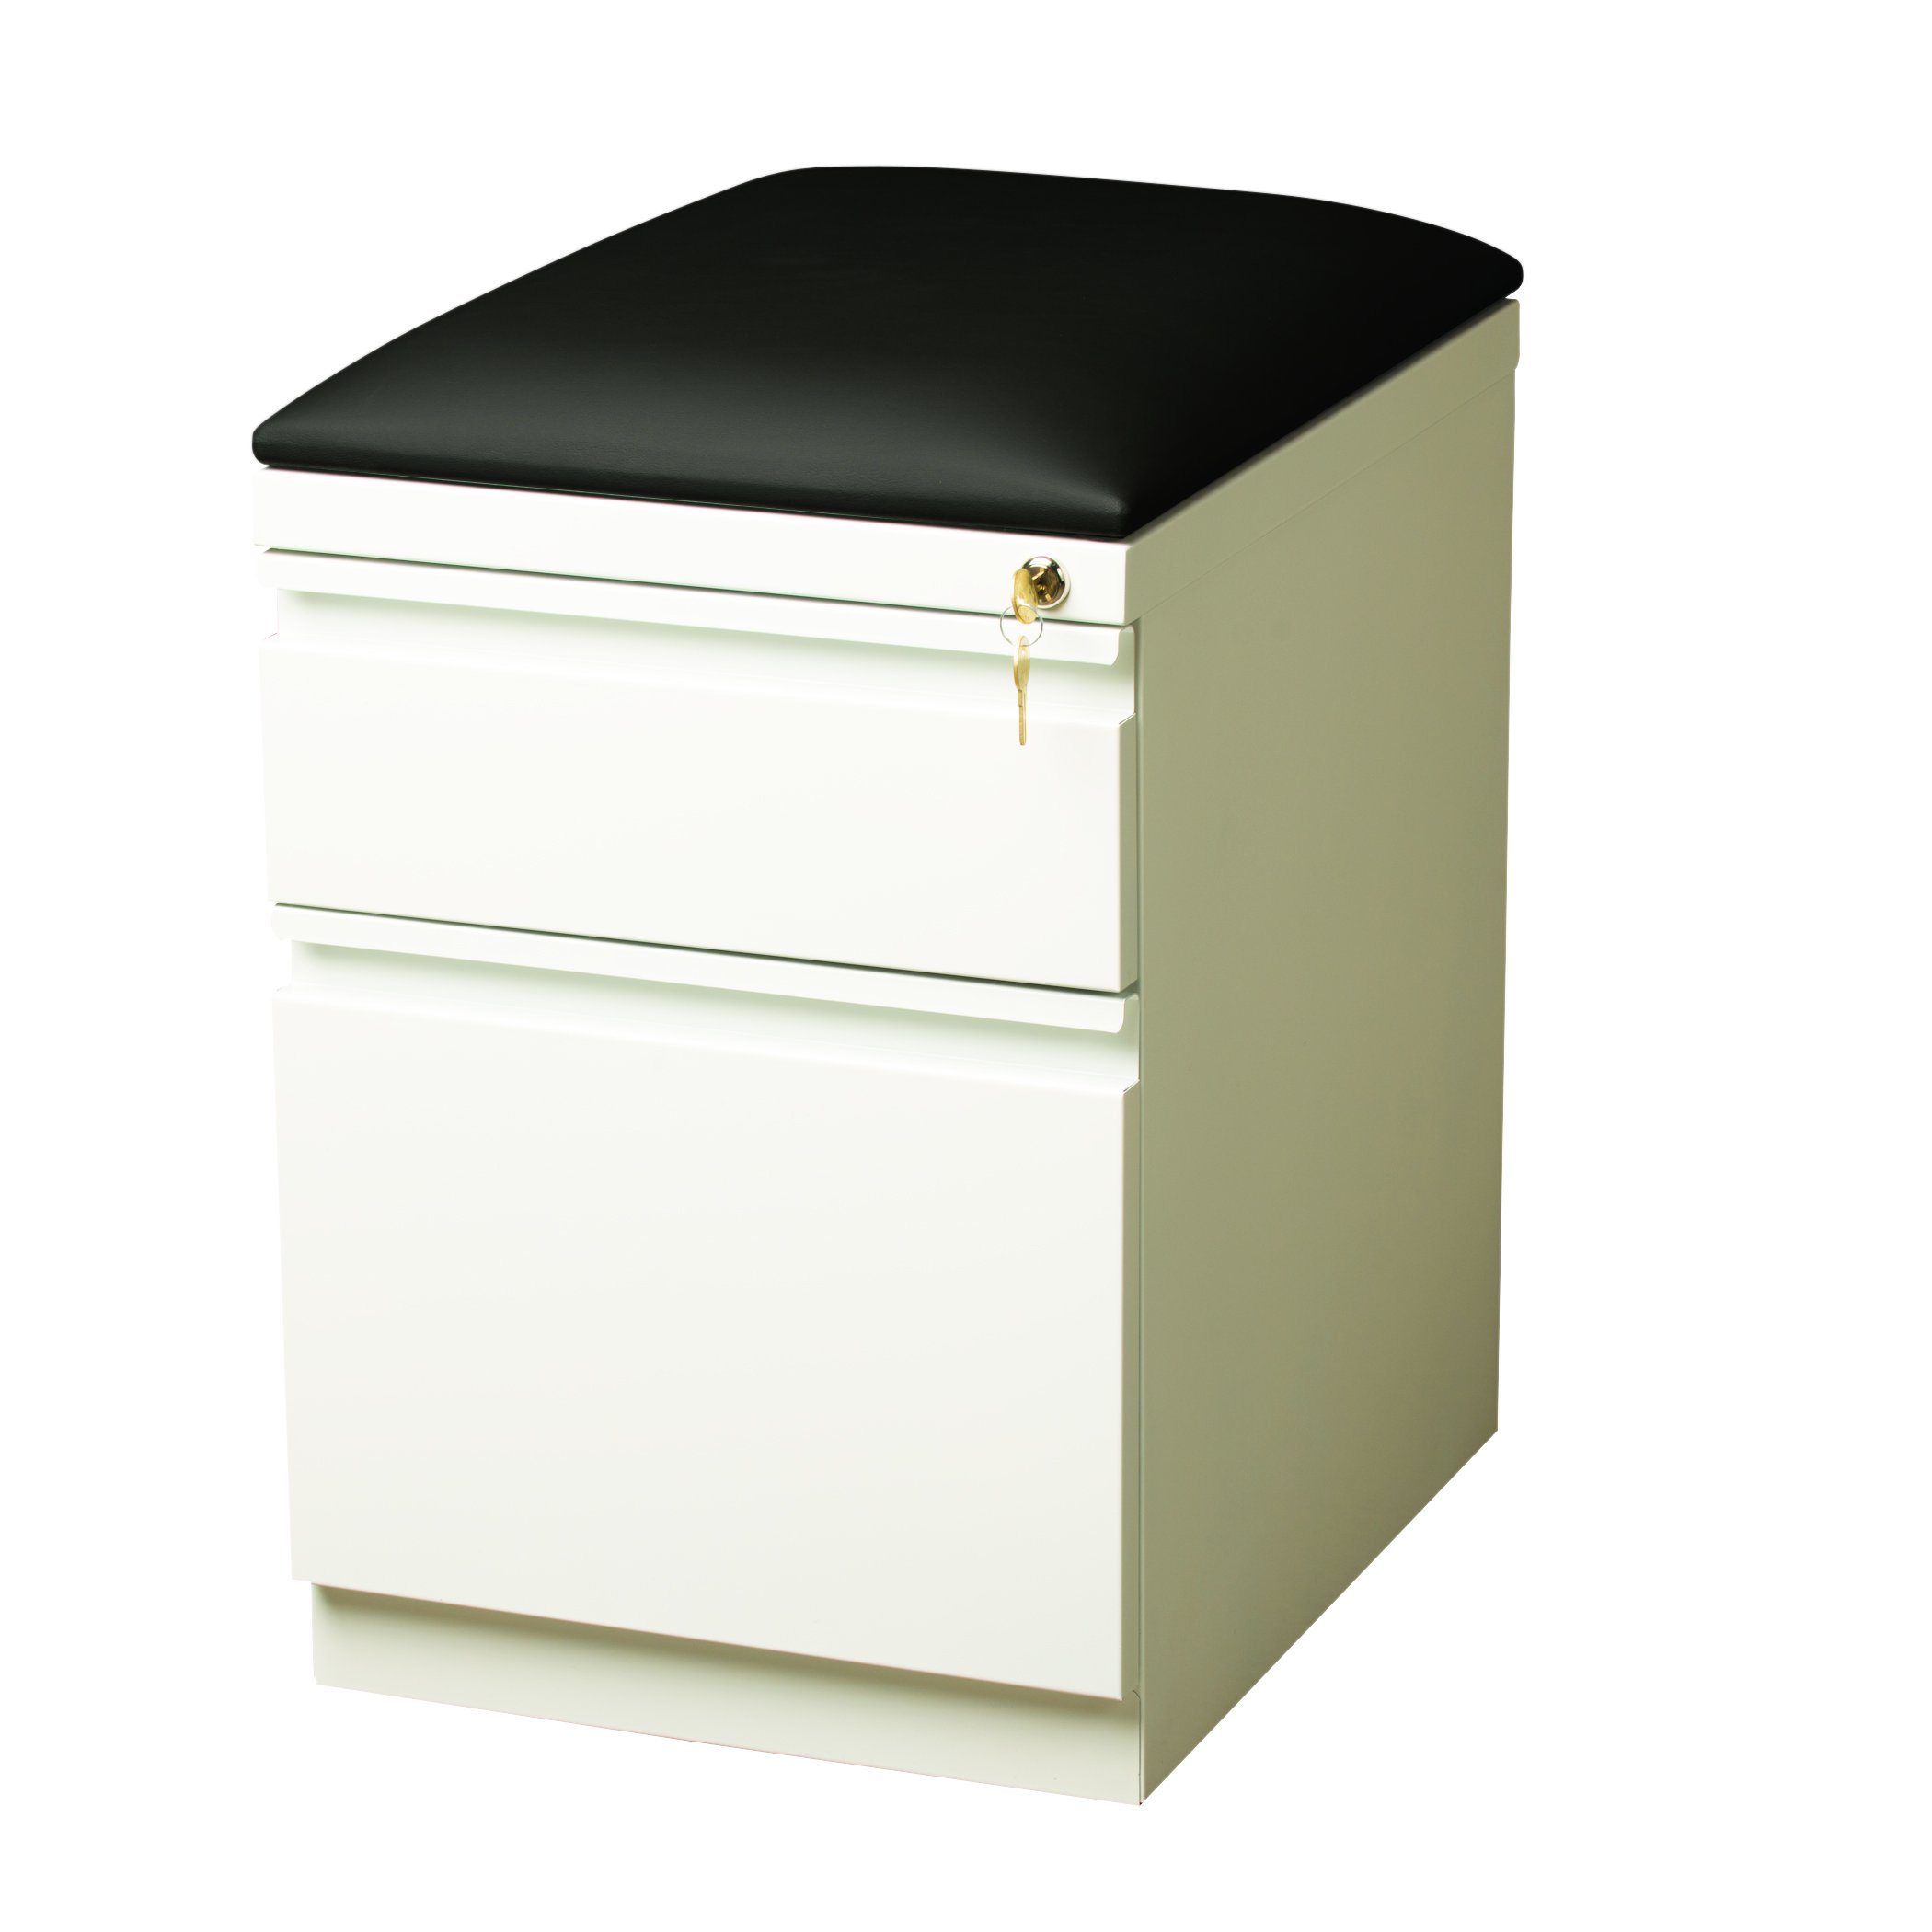 Office Dimensions 20'' File Cabinet w/ Seat and Concealed Wheels - Drawers (1 Storage, 1 File)